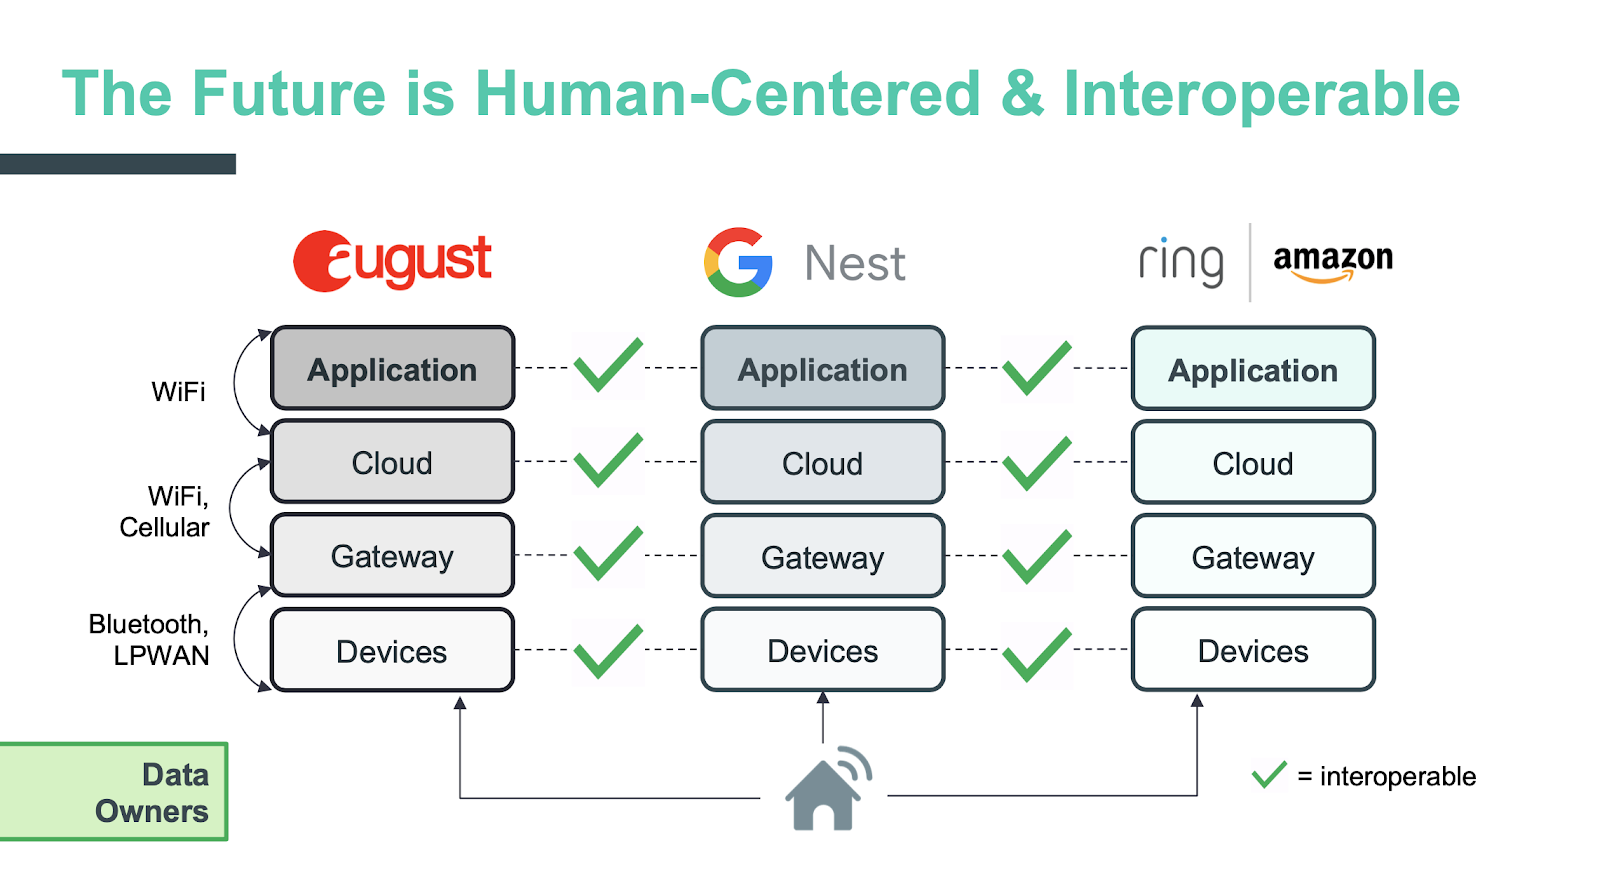 Human centered and interoperable IoT stack